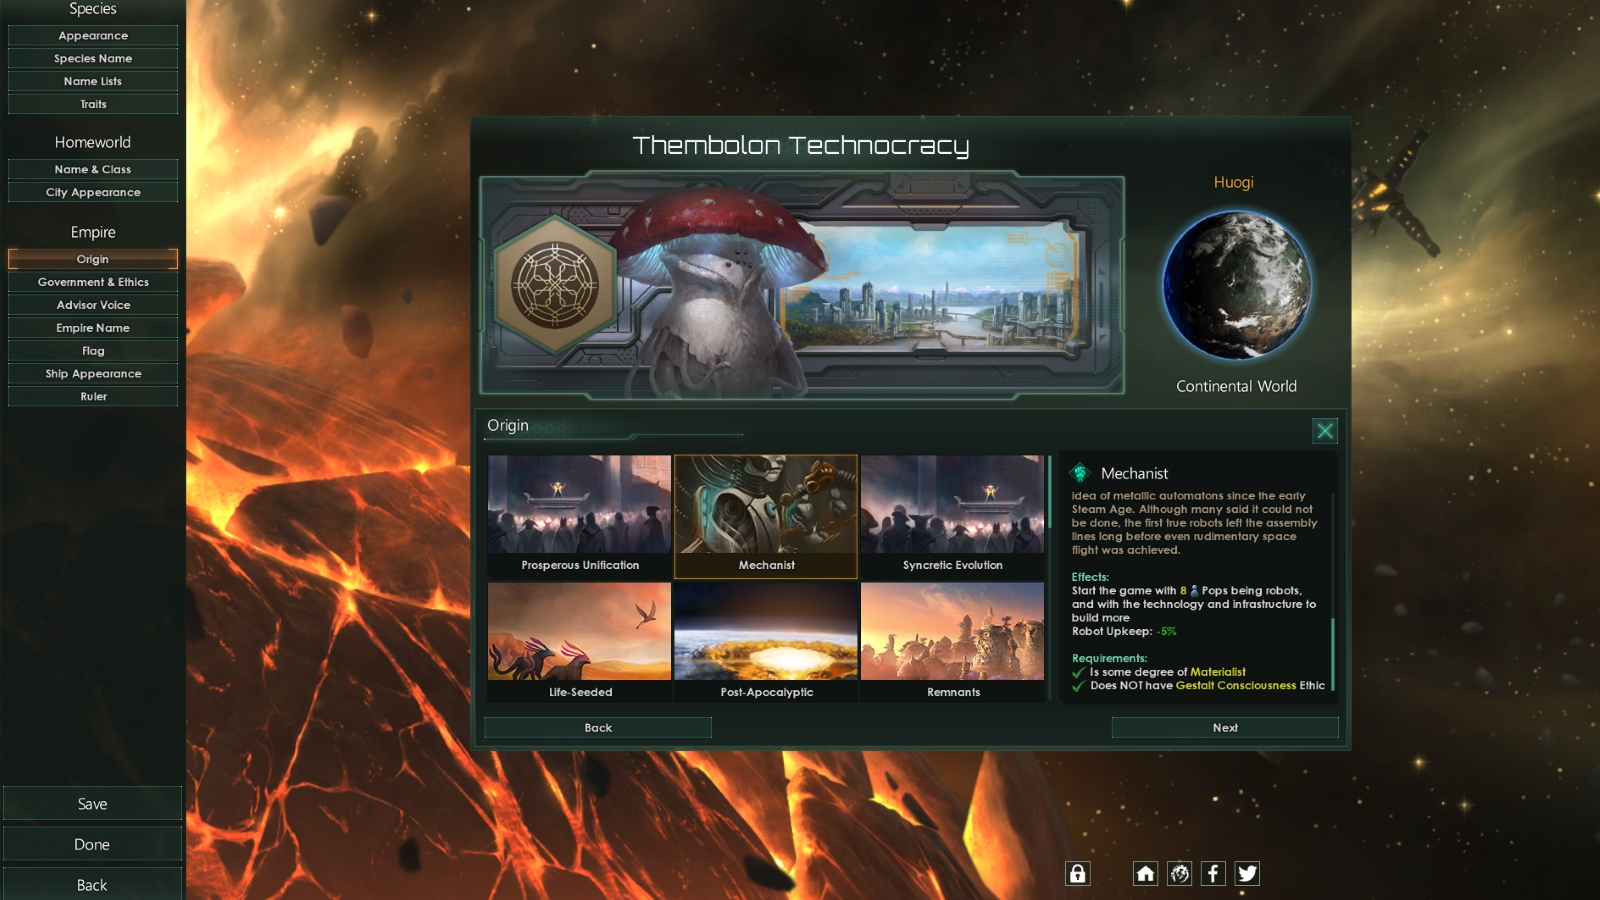 In the new Stellaris expansion, you can turn your home planet into a bomb